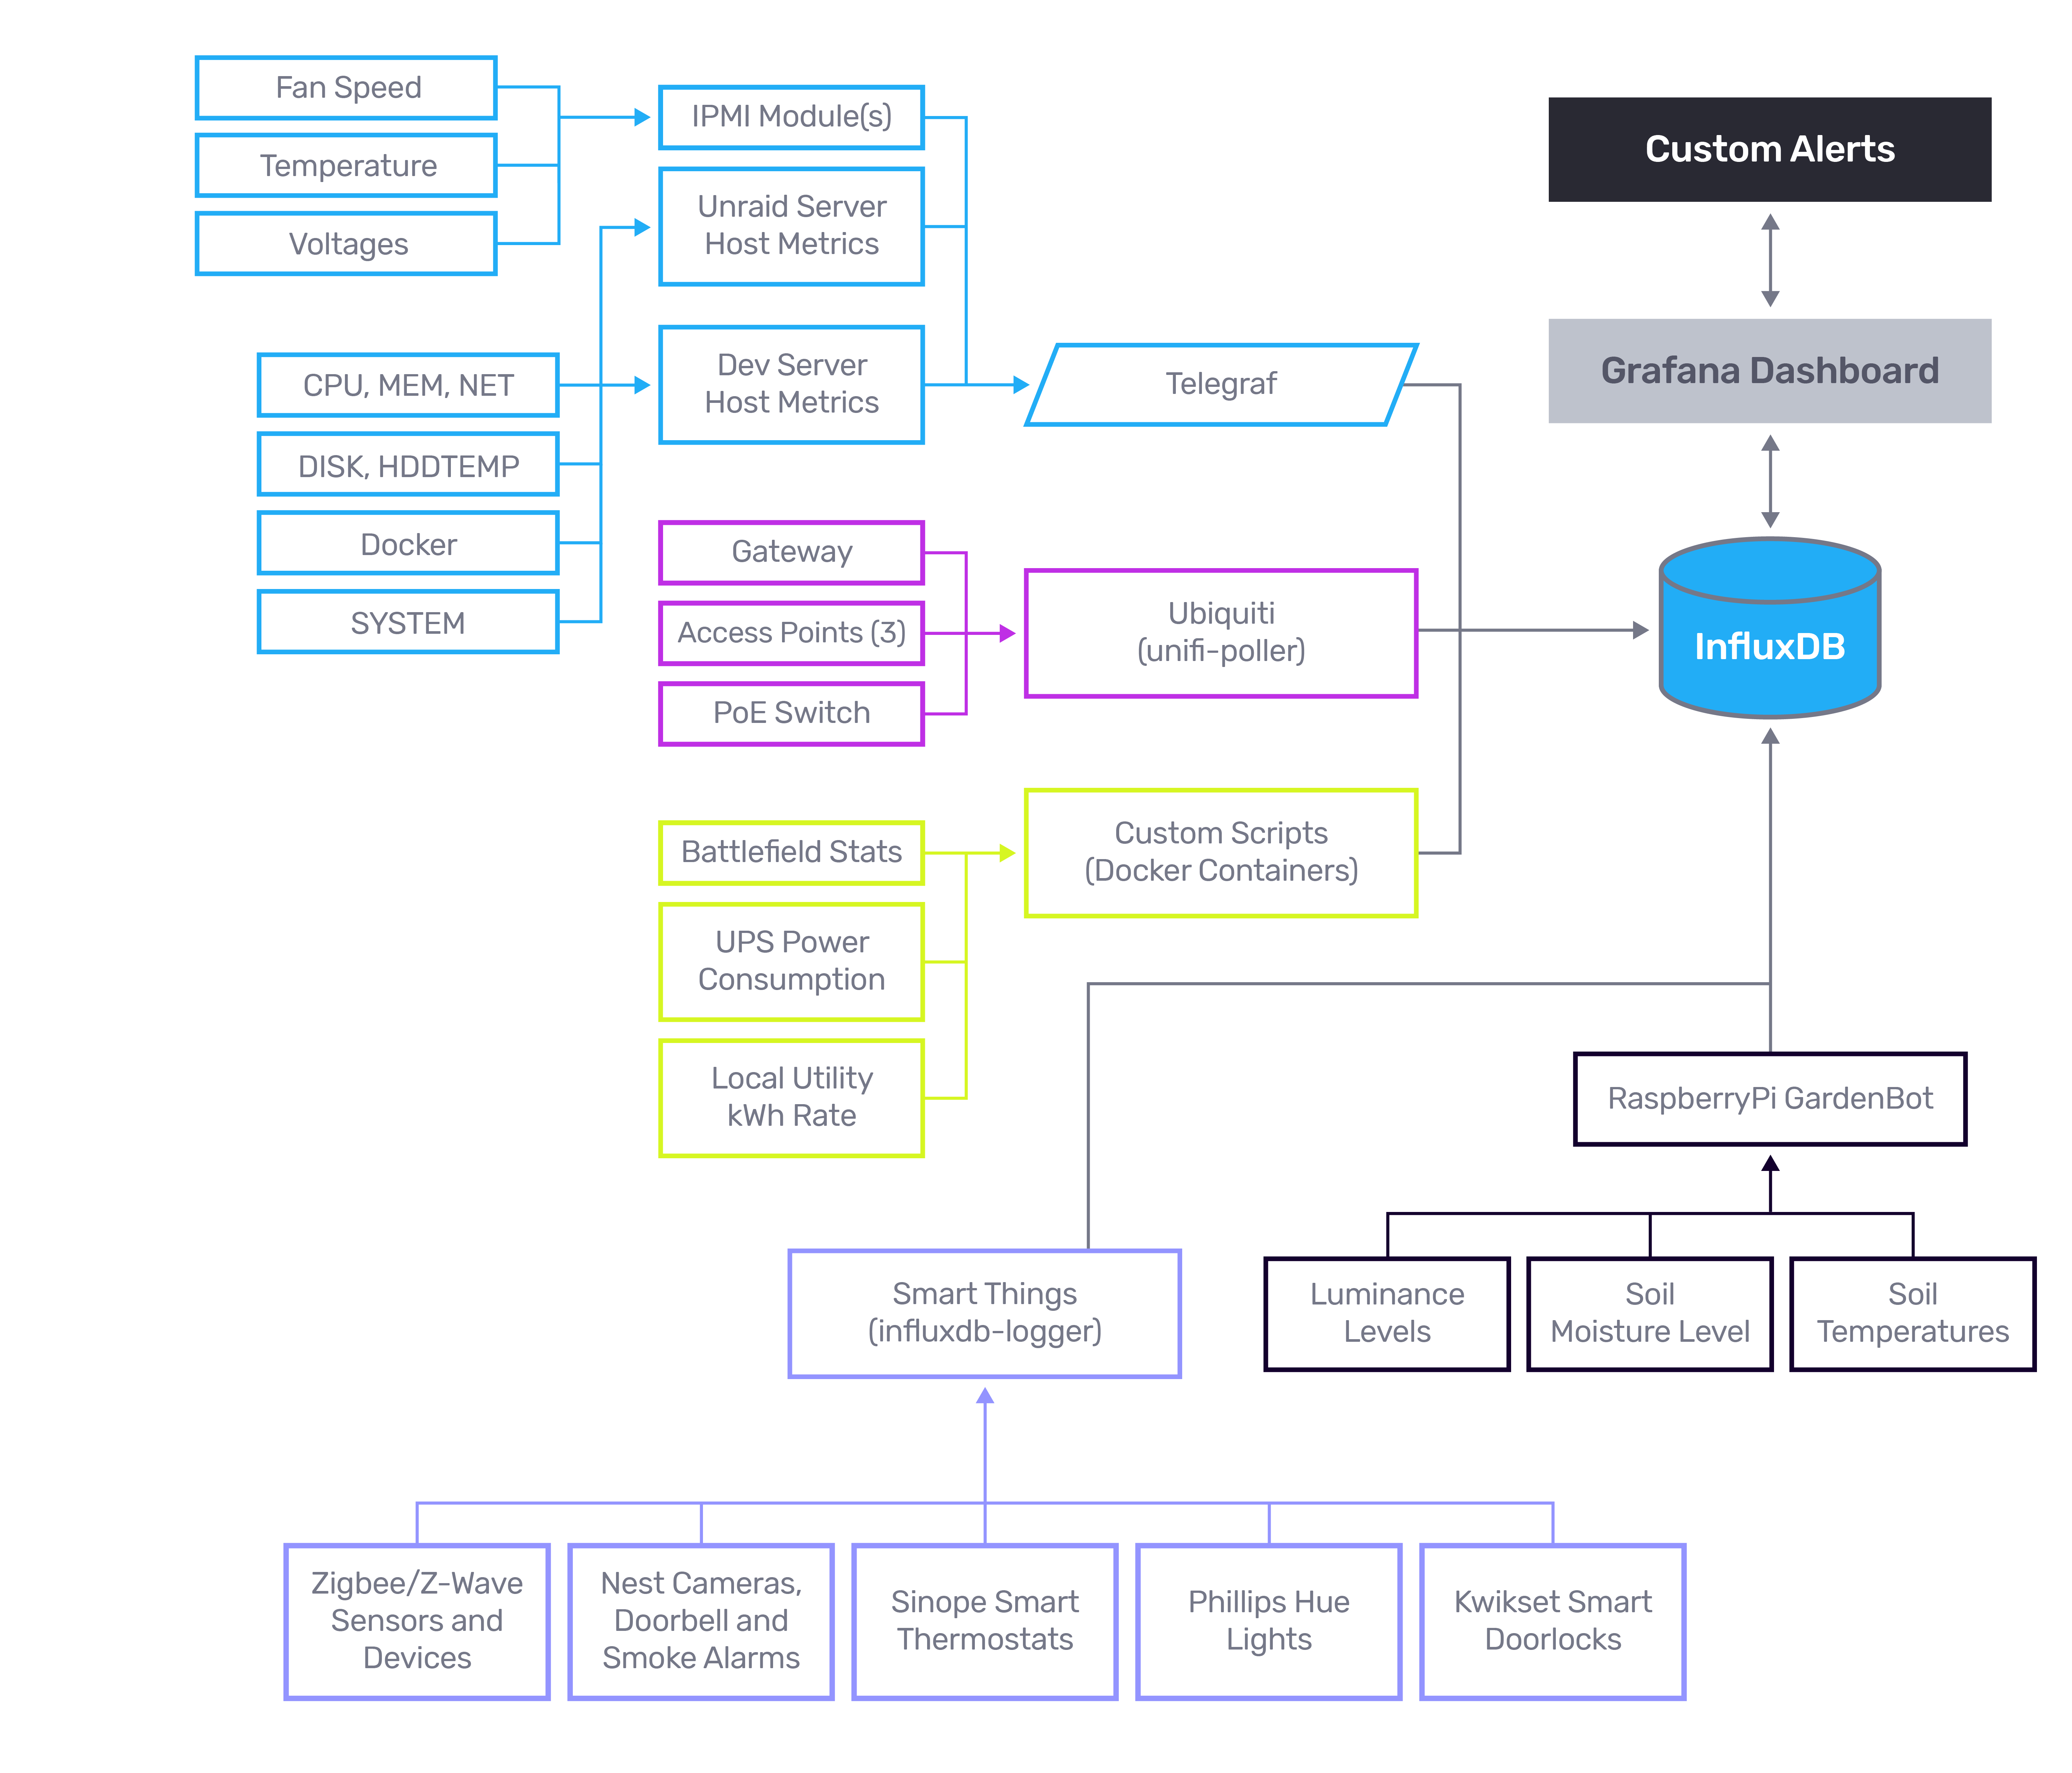 InfluxDB architecture diagram - Matt VanTassel